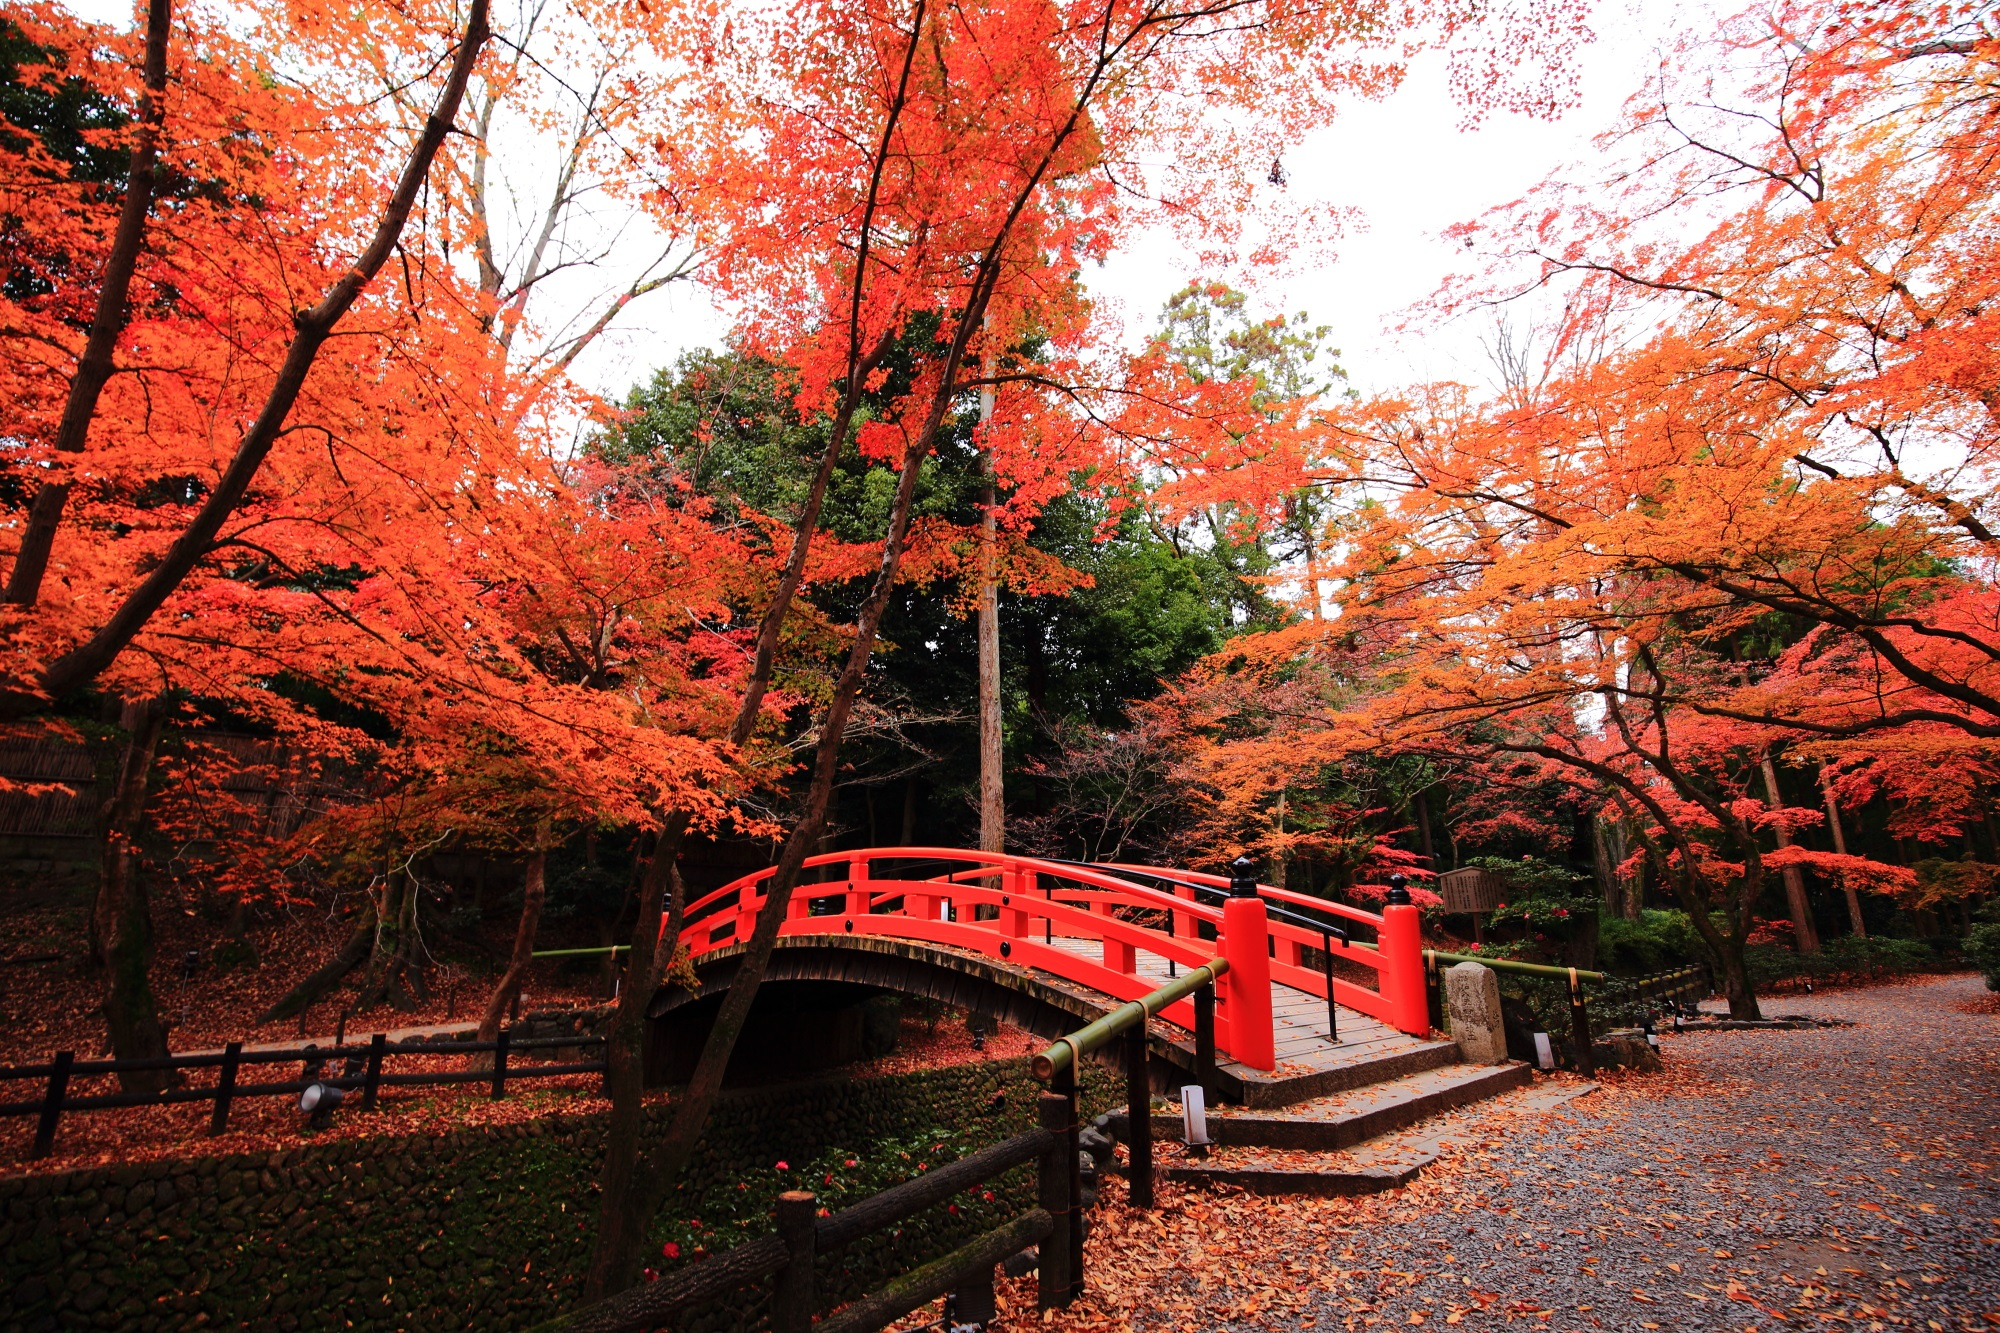 Autumn Scenery in Kyoto